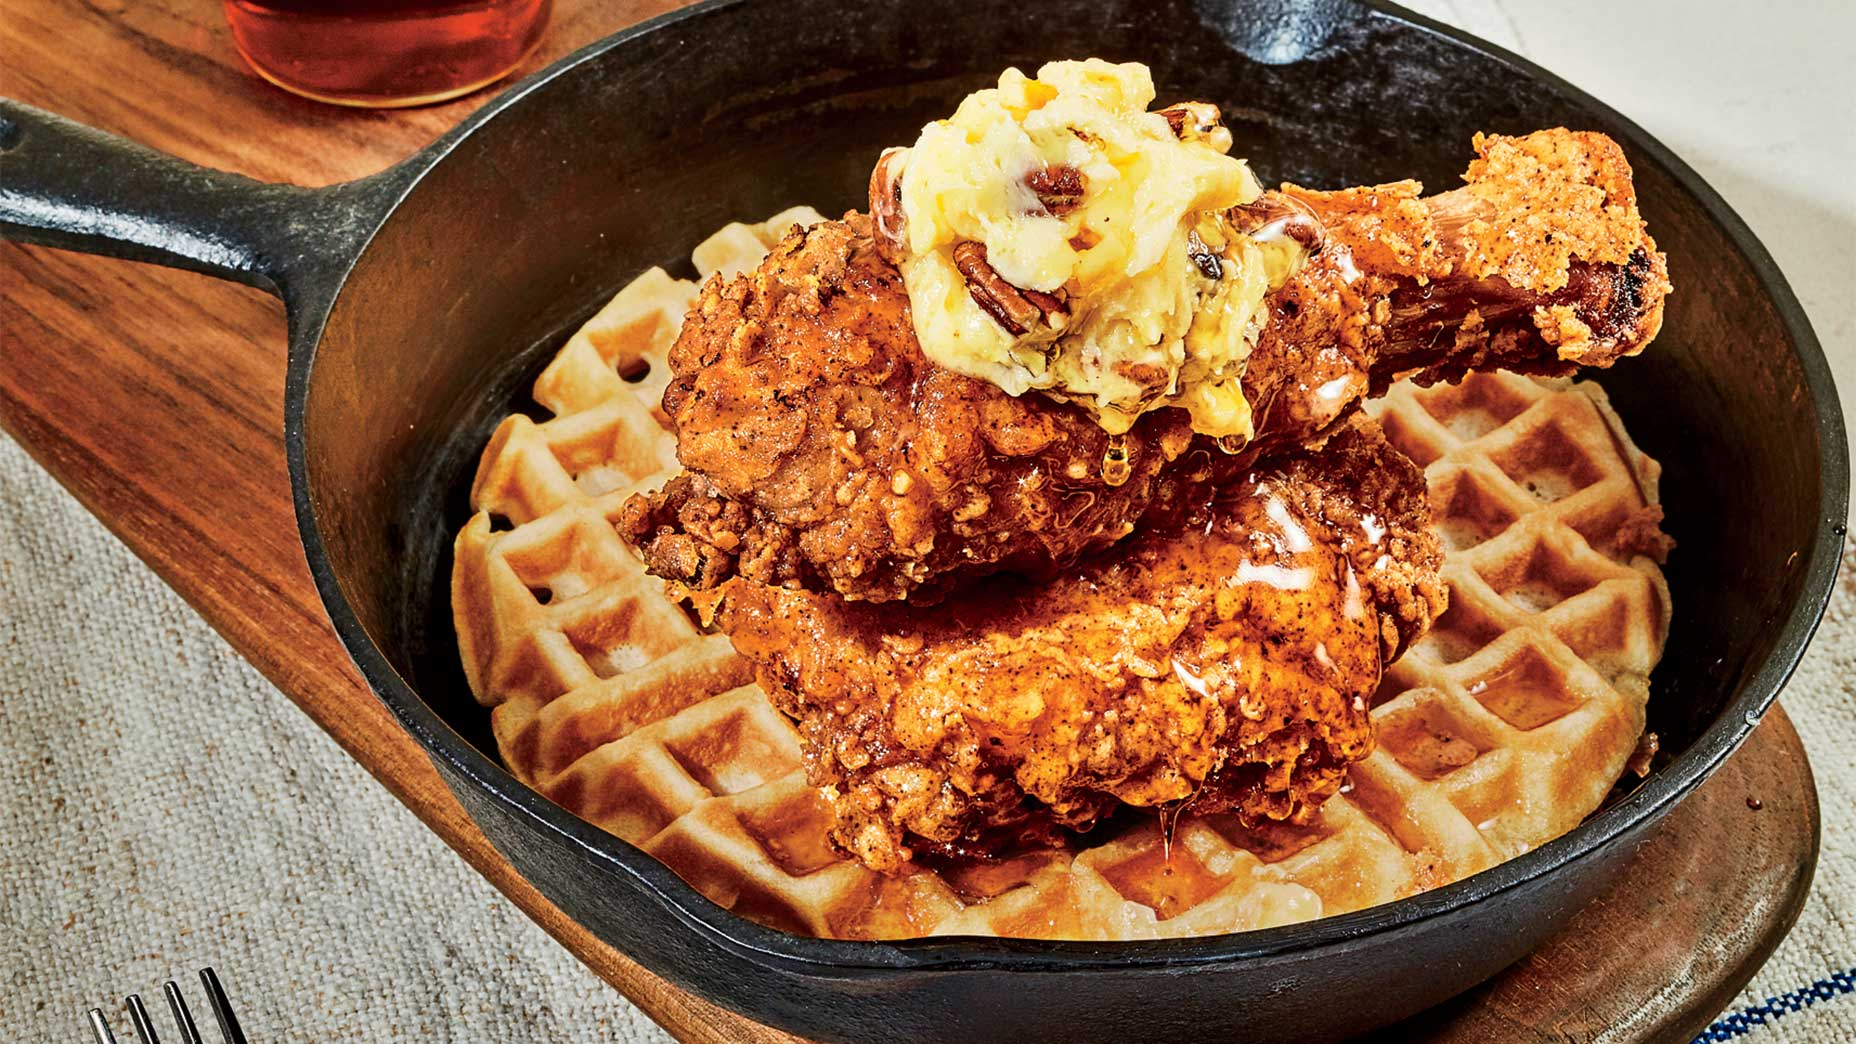 At the JW Marriott San Antonio, it's all about the chicken and waffles